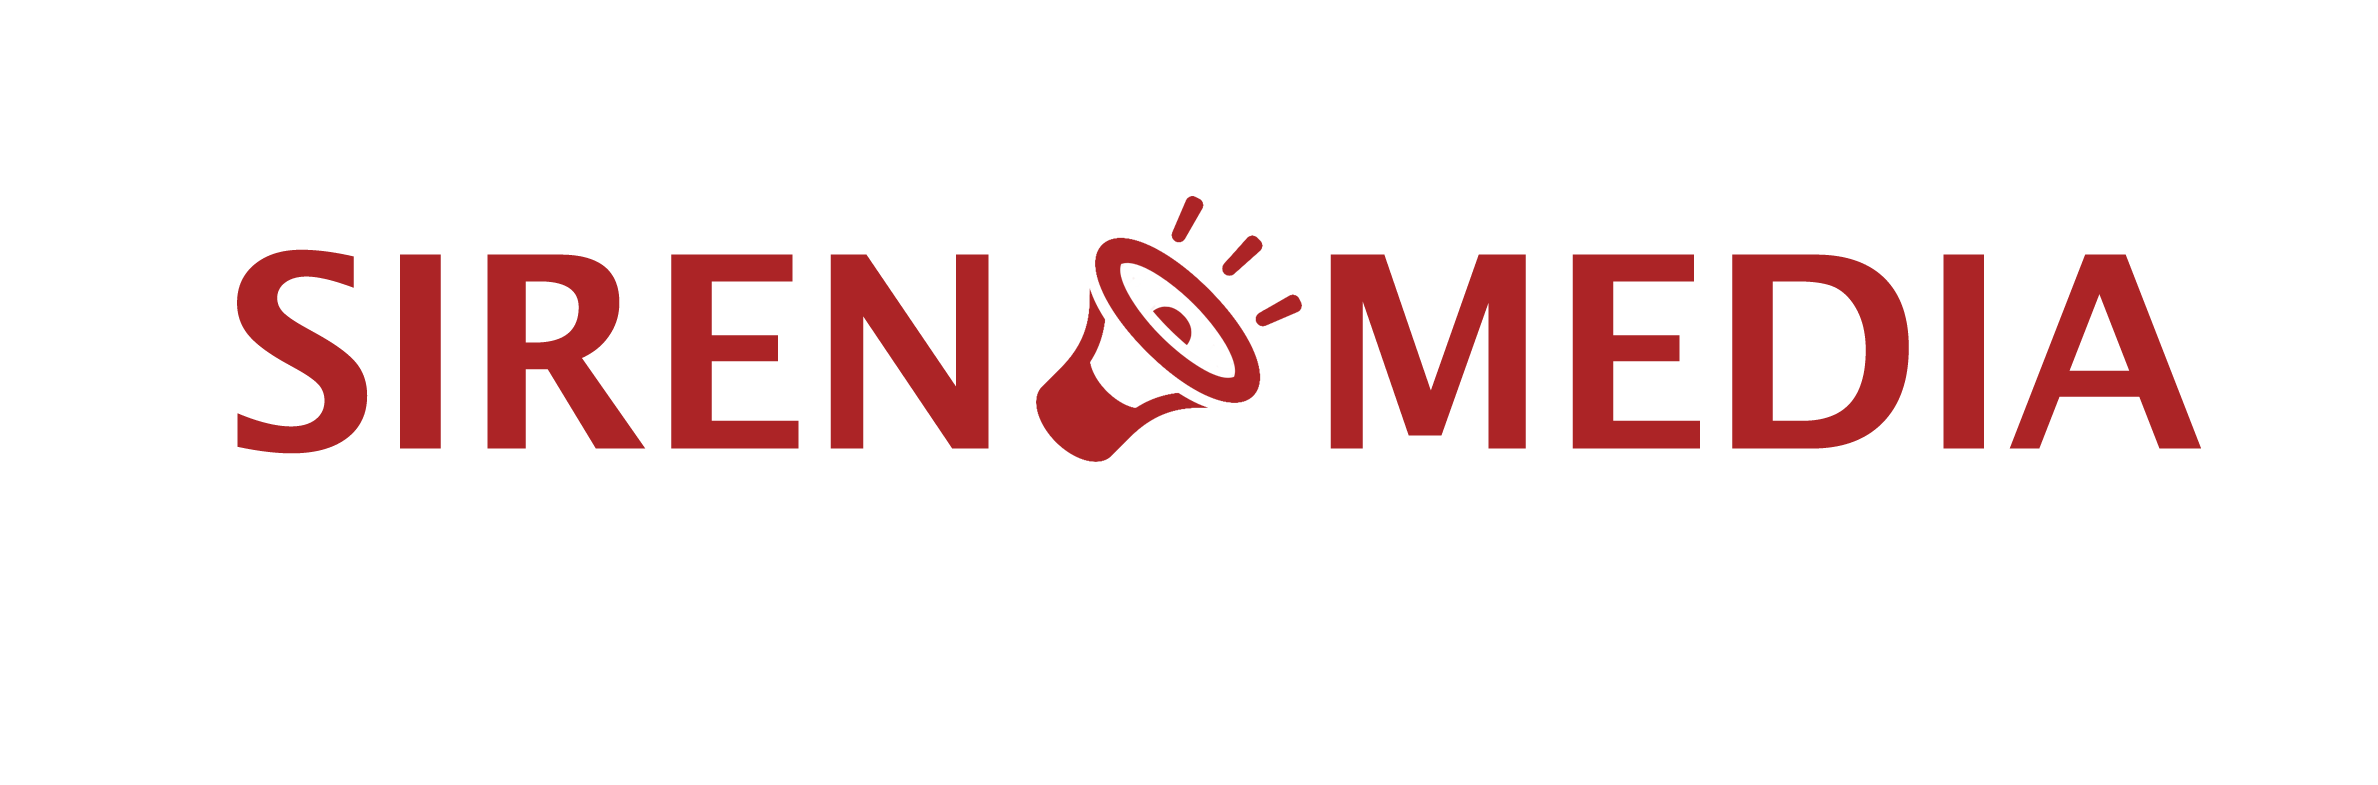 Siren Media logo 1 - red.png